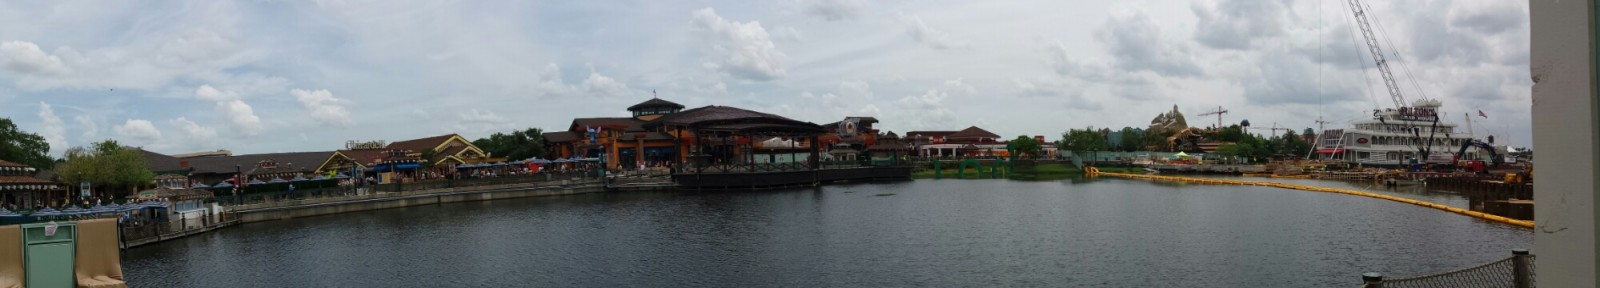 A wide shot of the Marketplace area/water front @ Downtown Disney